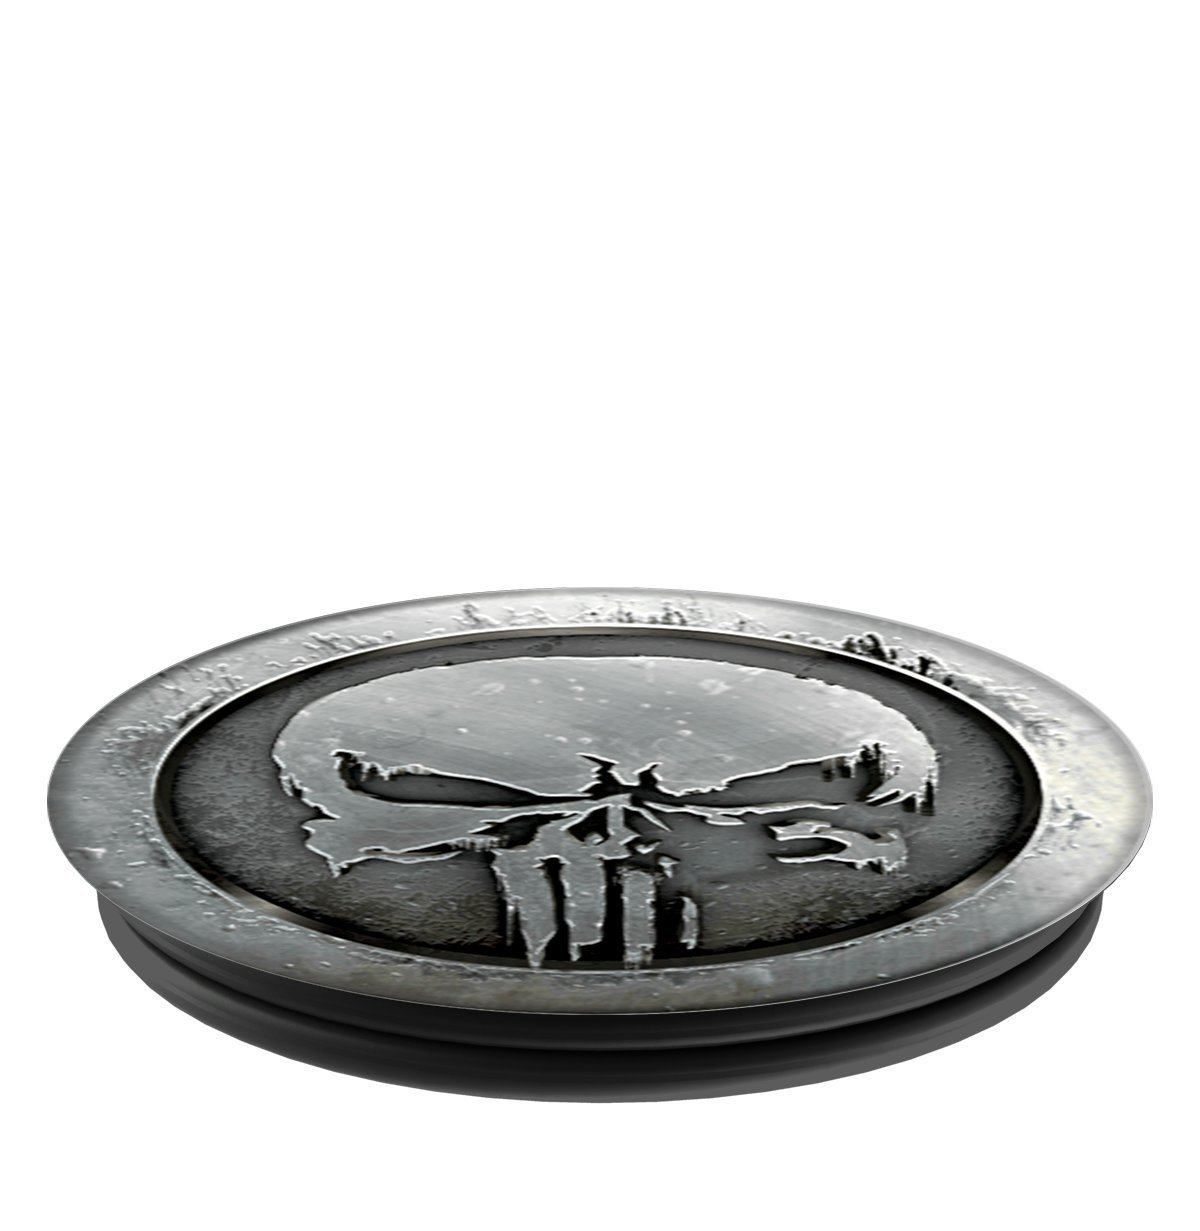 PopSockets: Collapsible Grip and Stand for Phones and Tablets - Marvel - Punisher MonoChrome by PopSockets (Image #3)